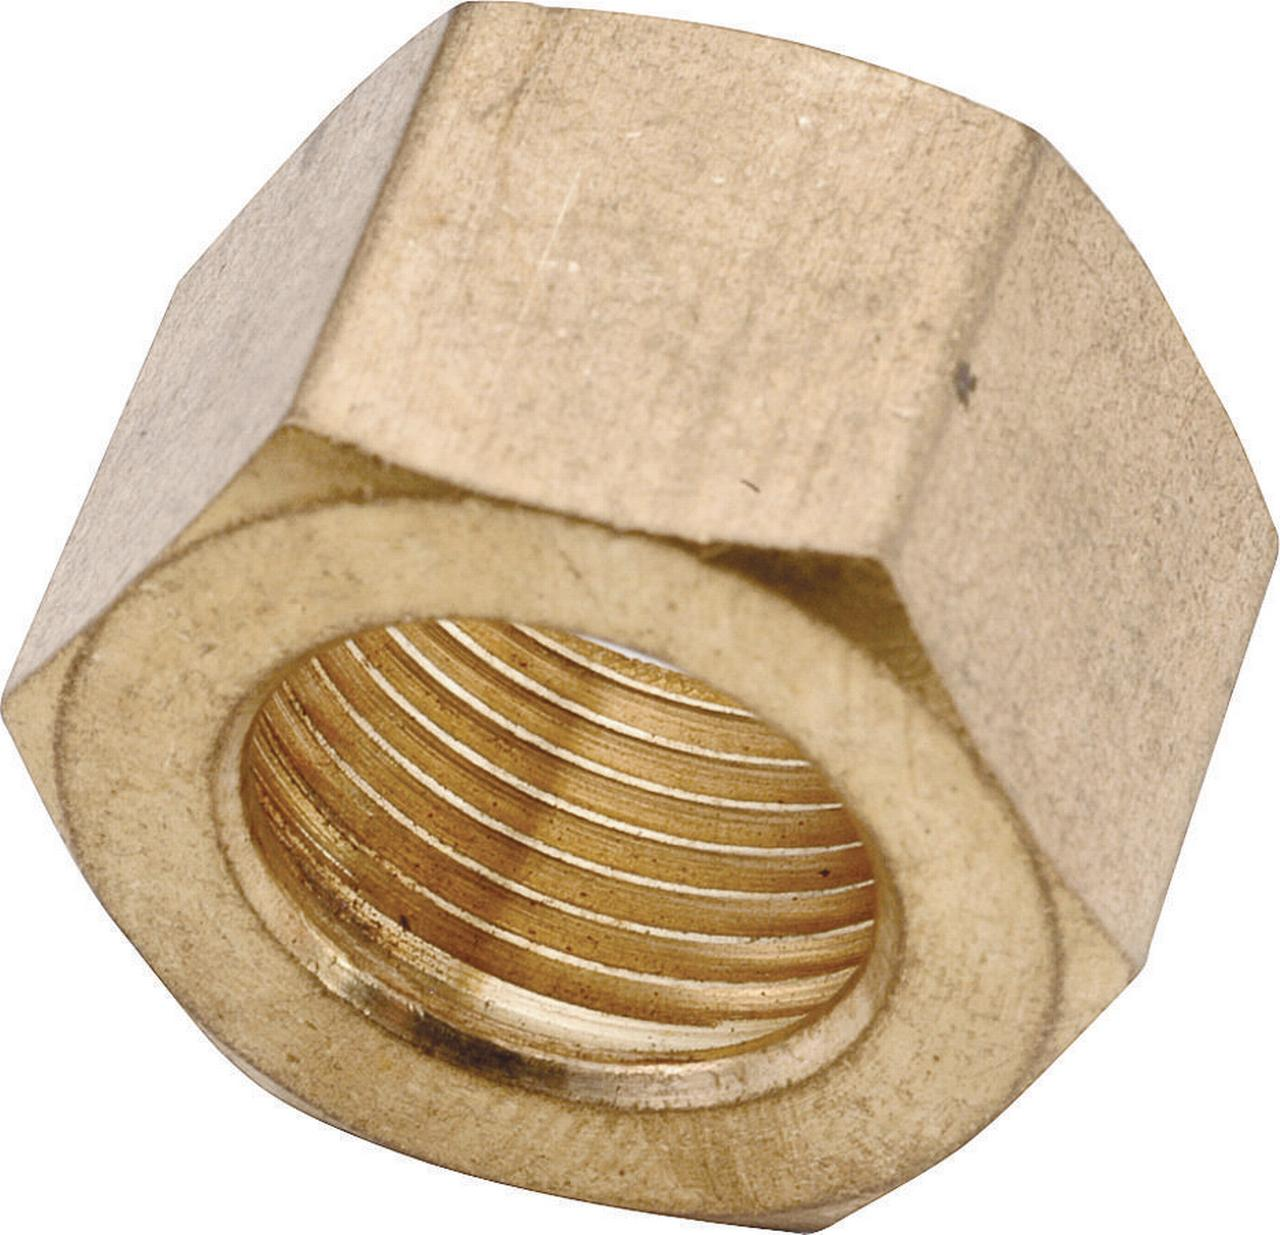 Anderson Metals 730061-10 Compression Nut, 5/8 in, Brass